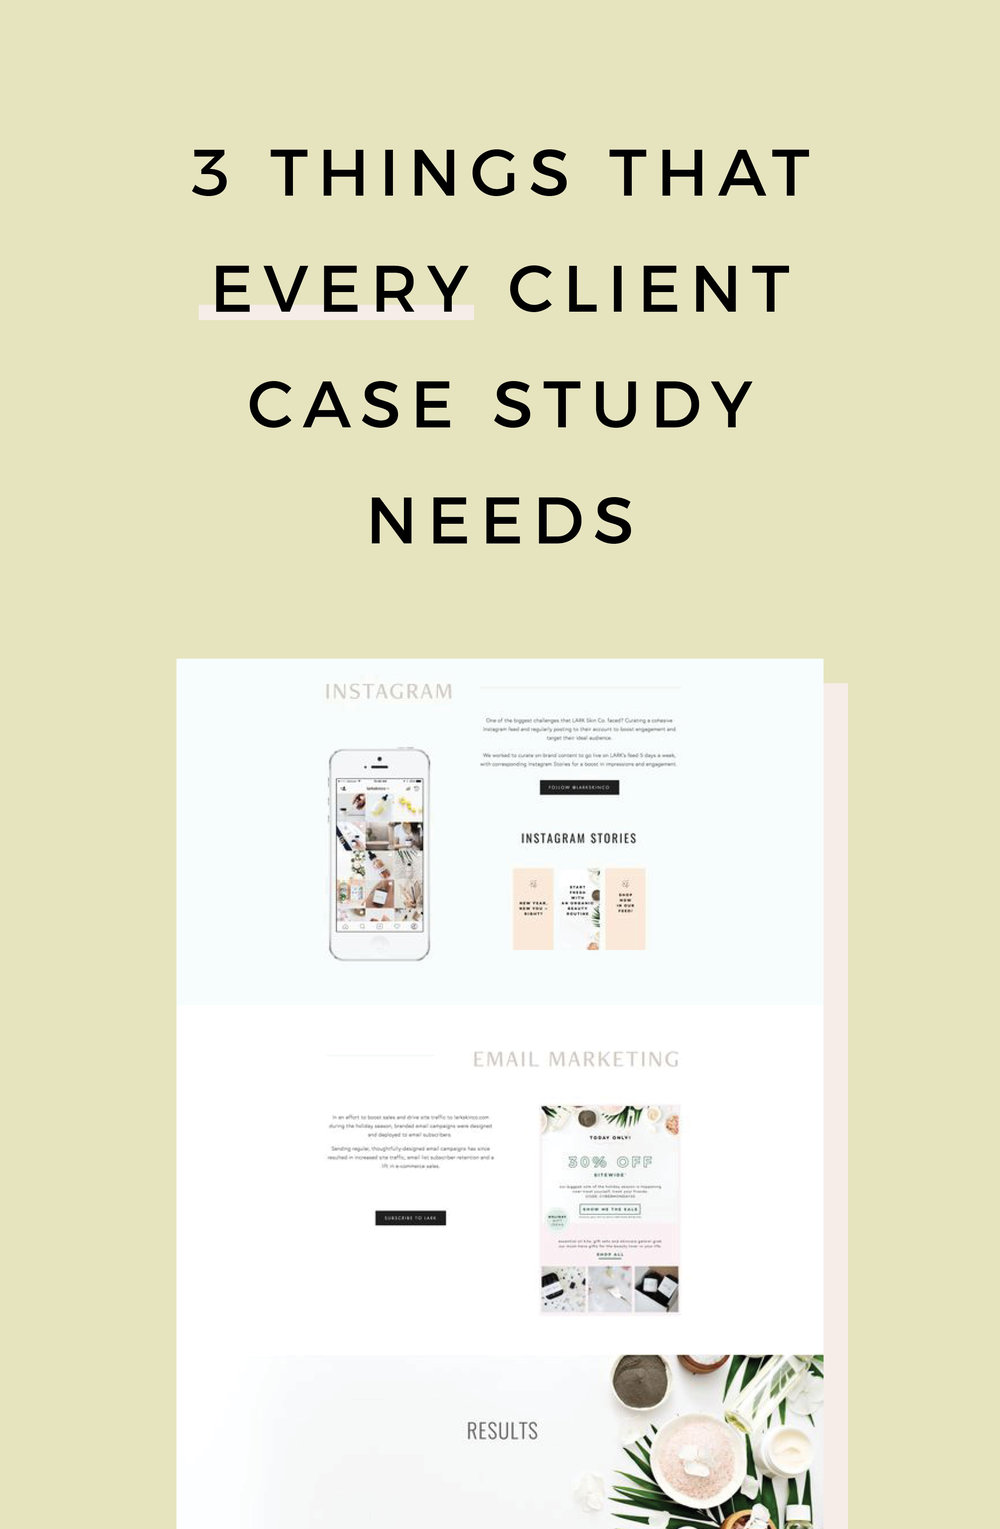 3 Things That Every Client Case Study Needs